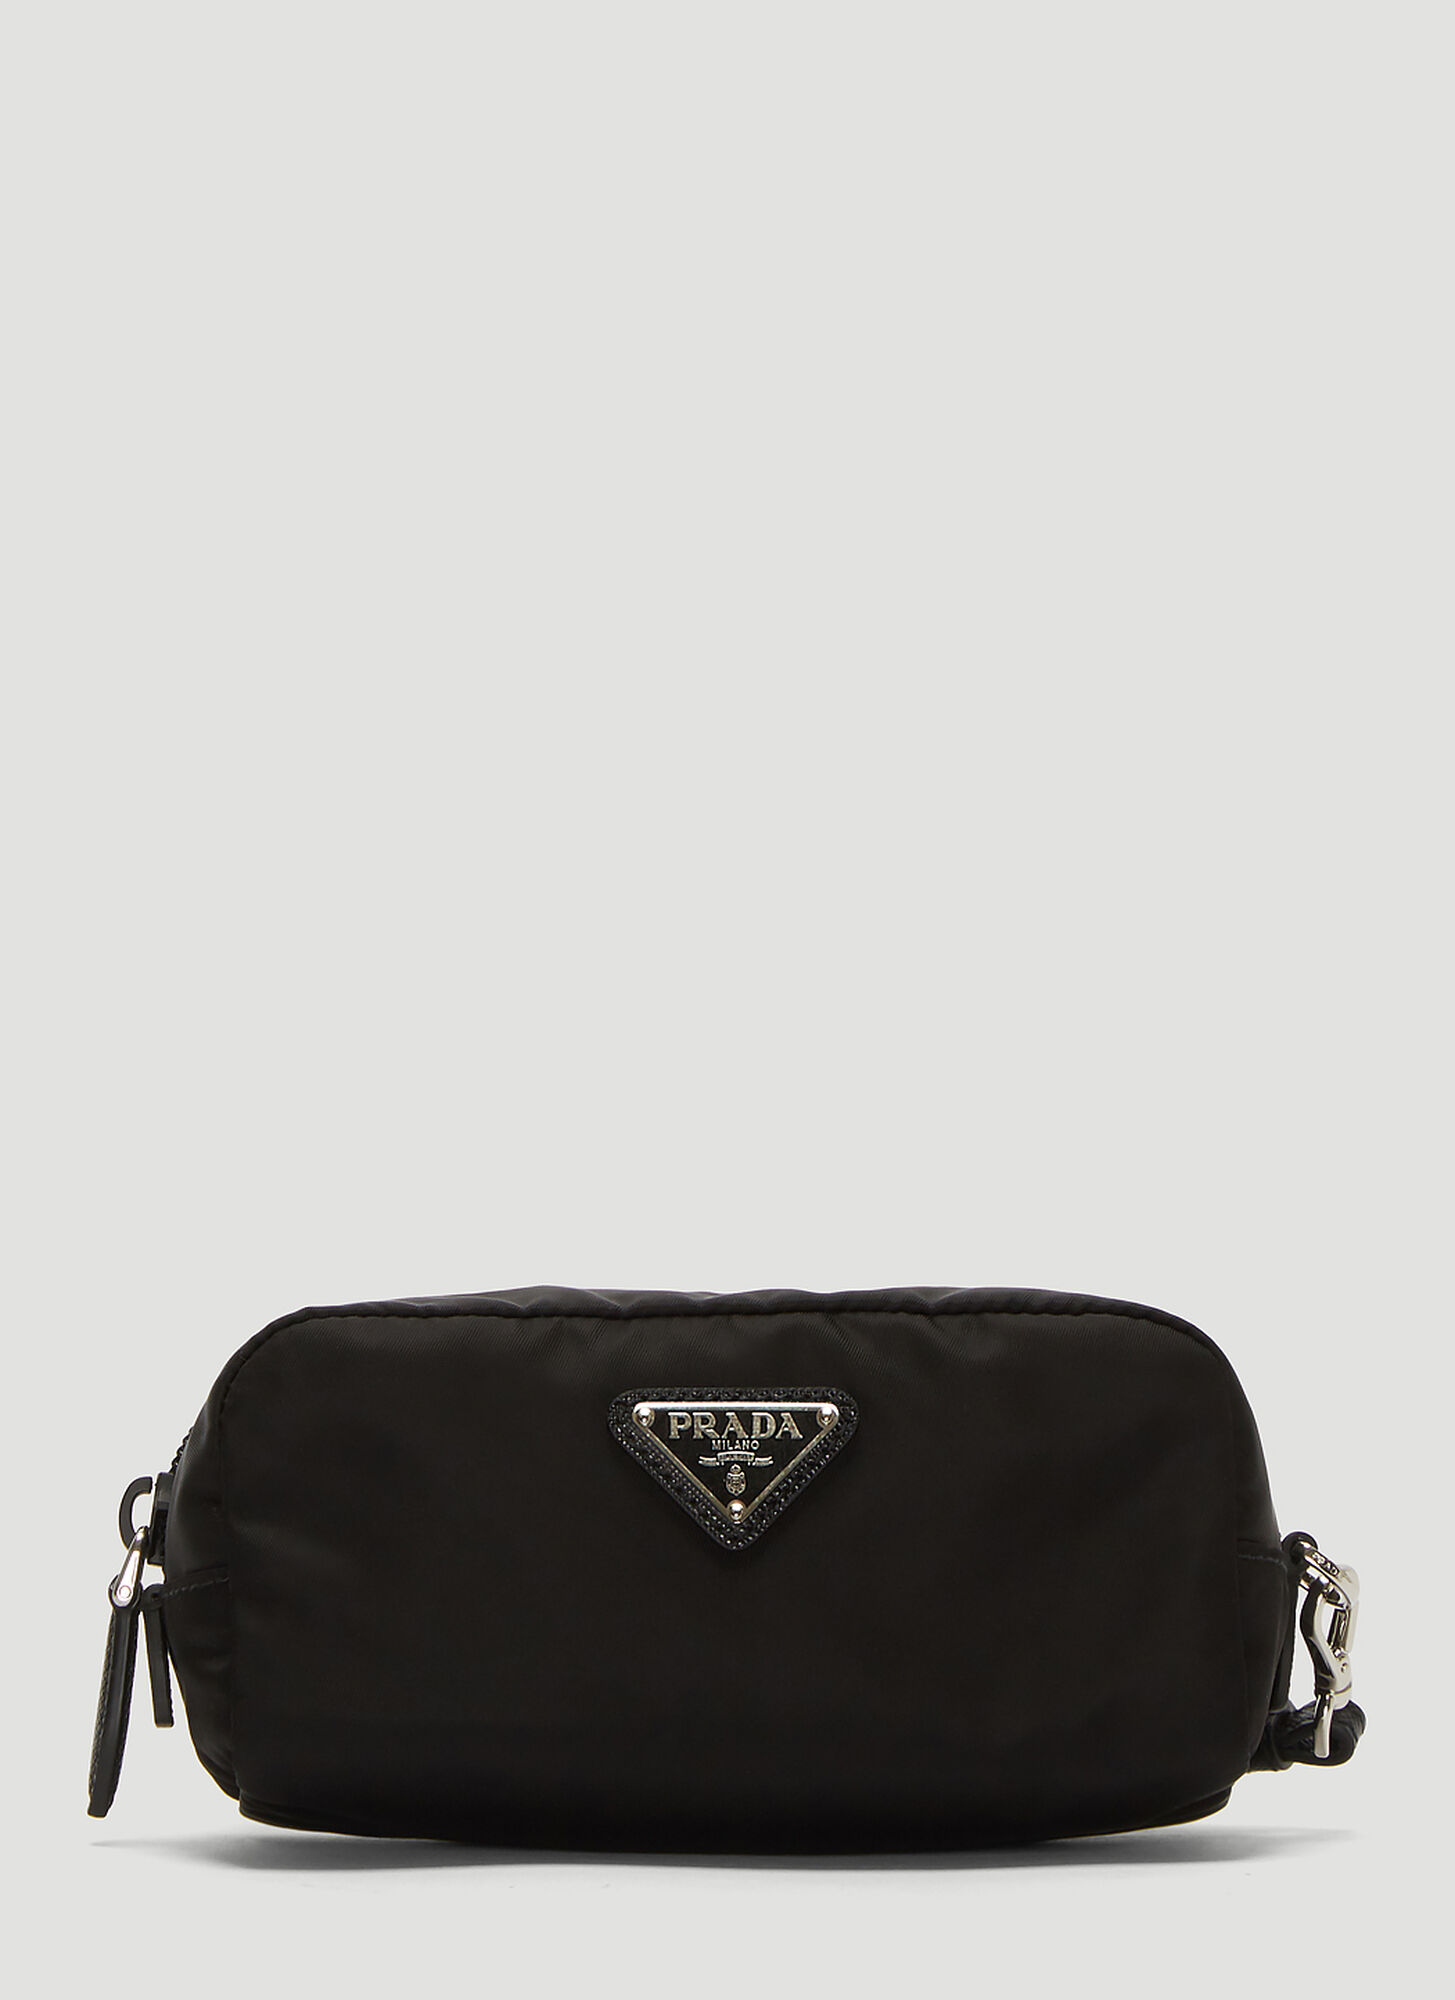 Prada Nylon Beauty Pouch in Black